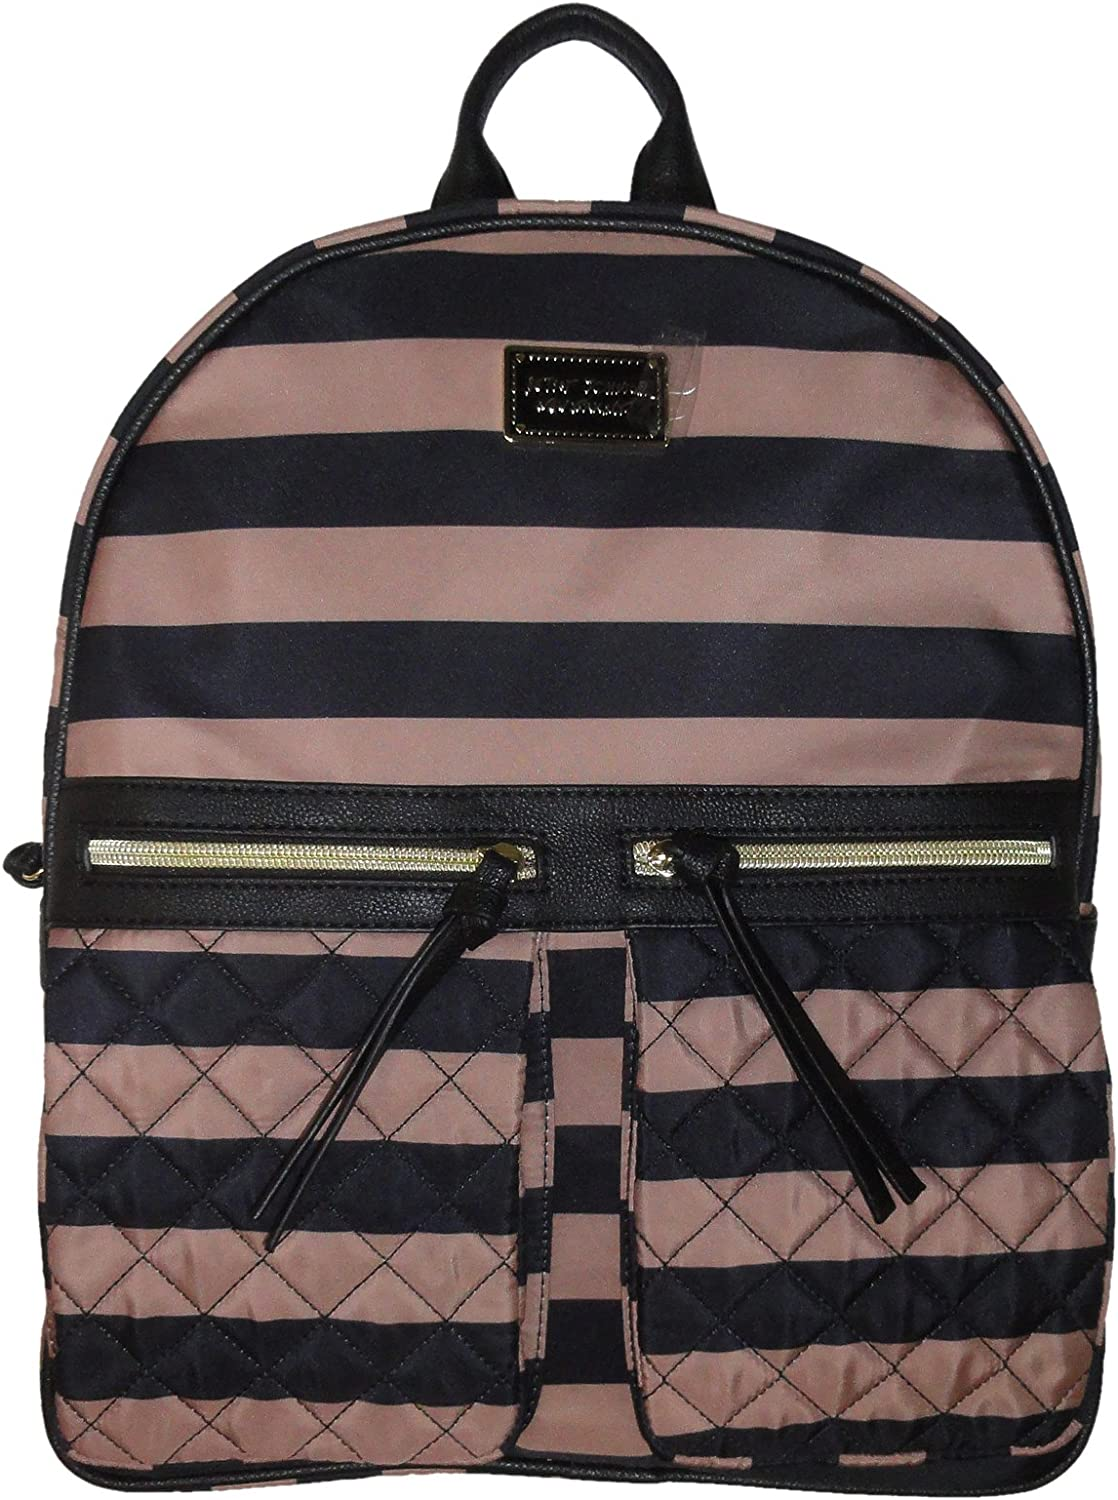 Betsey Johnson Women's Backpack Two Pocket, Spice